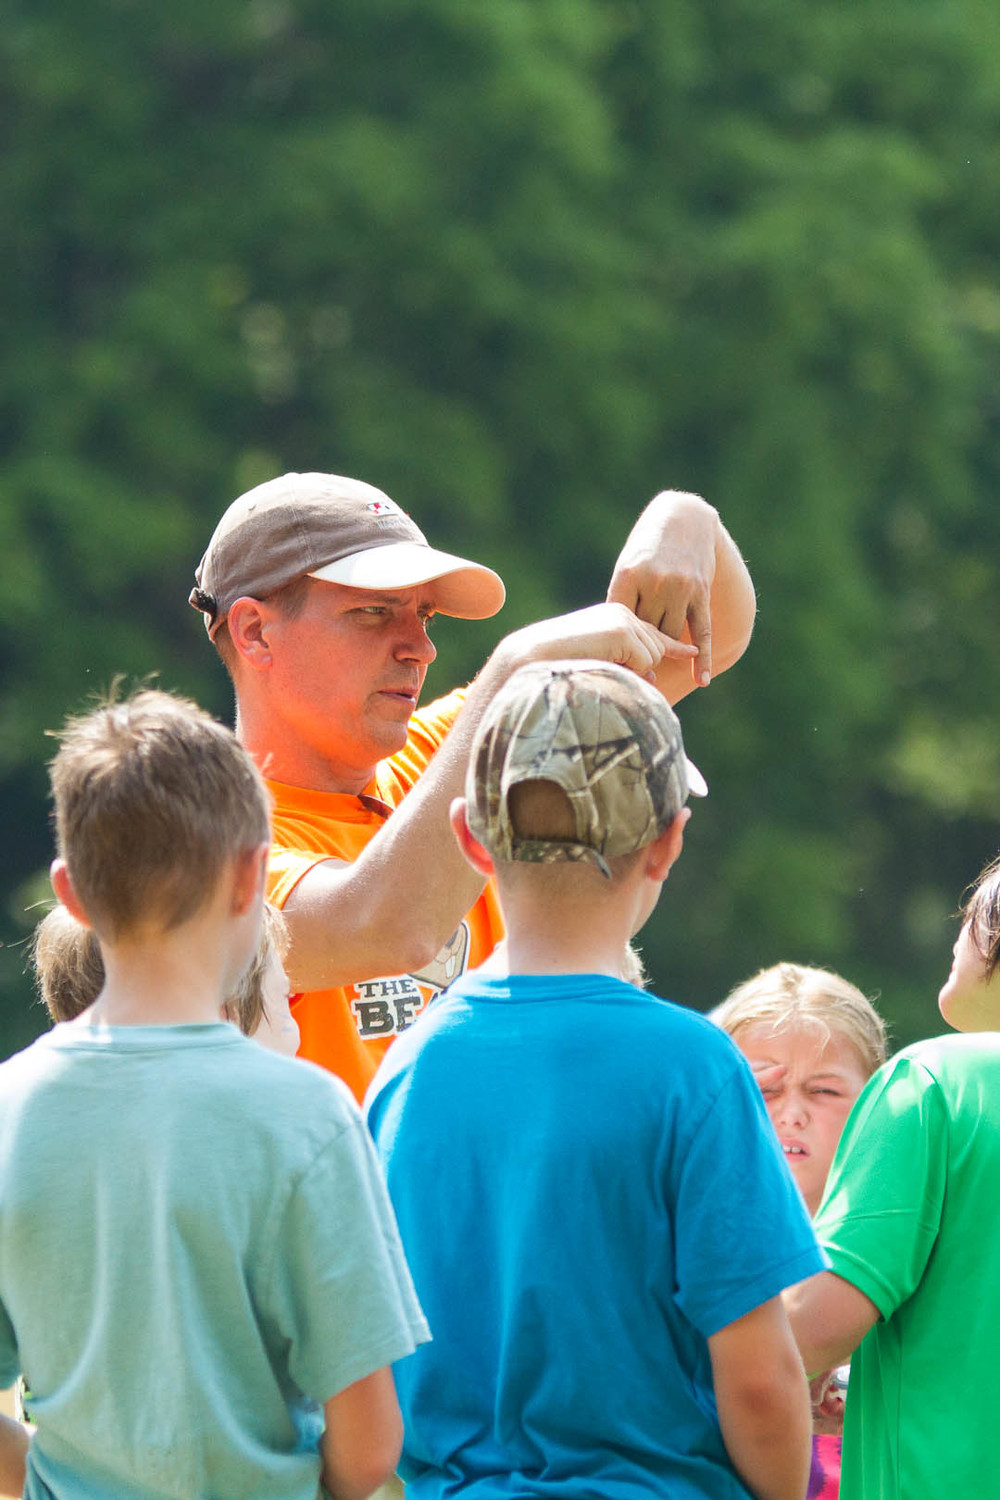 Summer camp counsellor teaching children